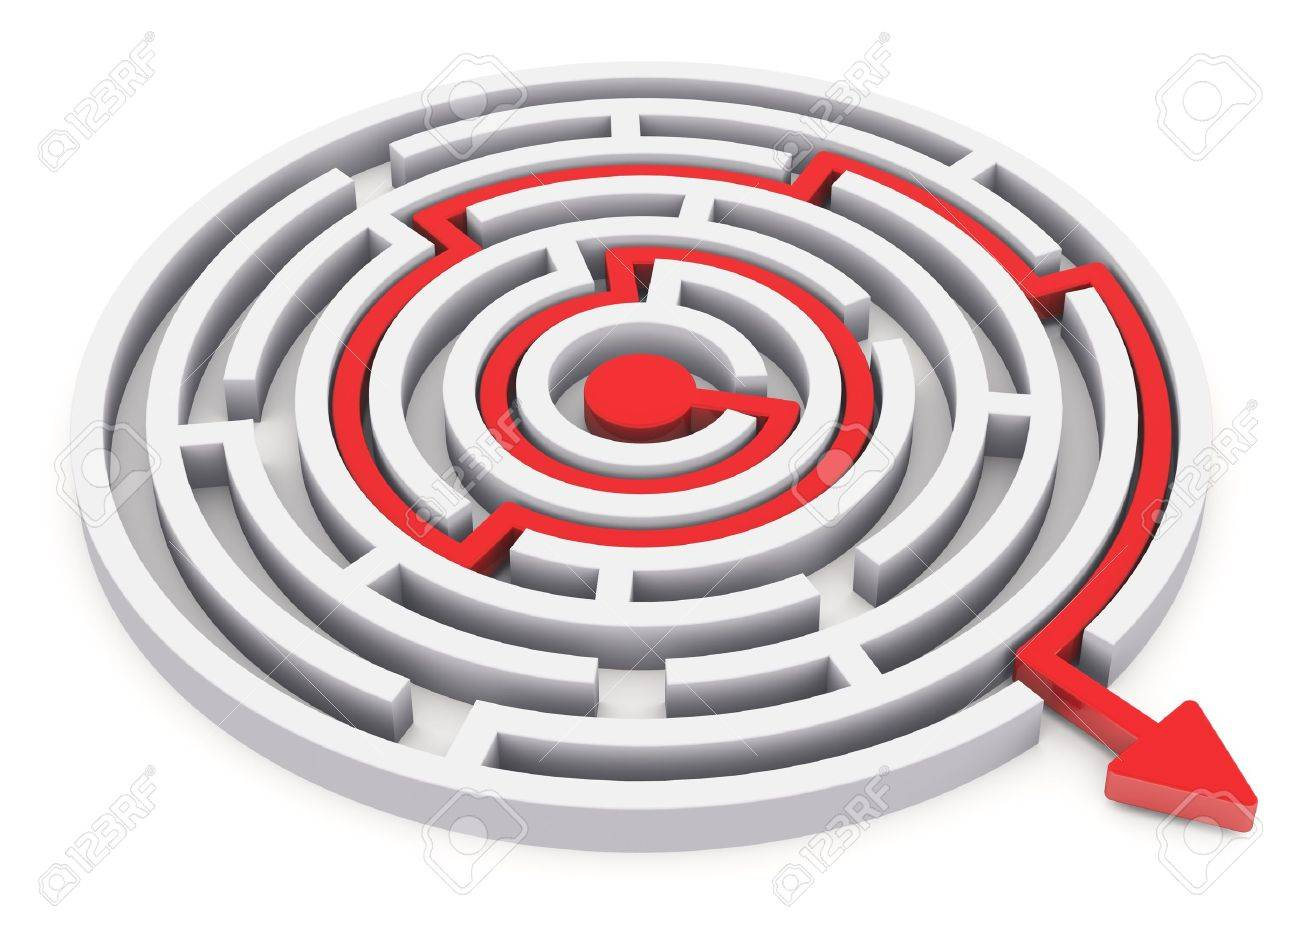 Solved round circle labyrinth with red path with arrow isolated on white background Stock Photo - 14361568